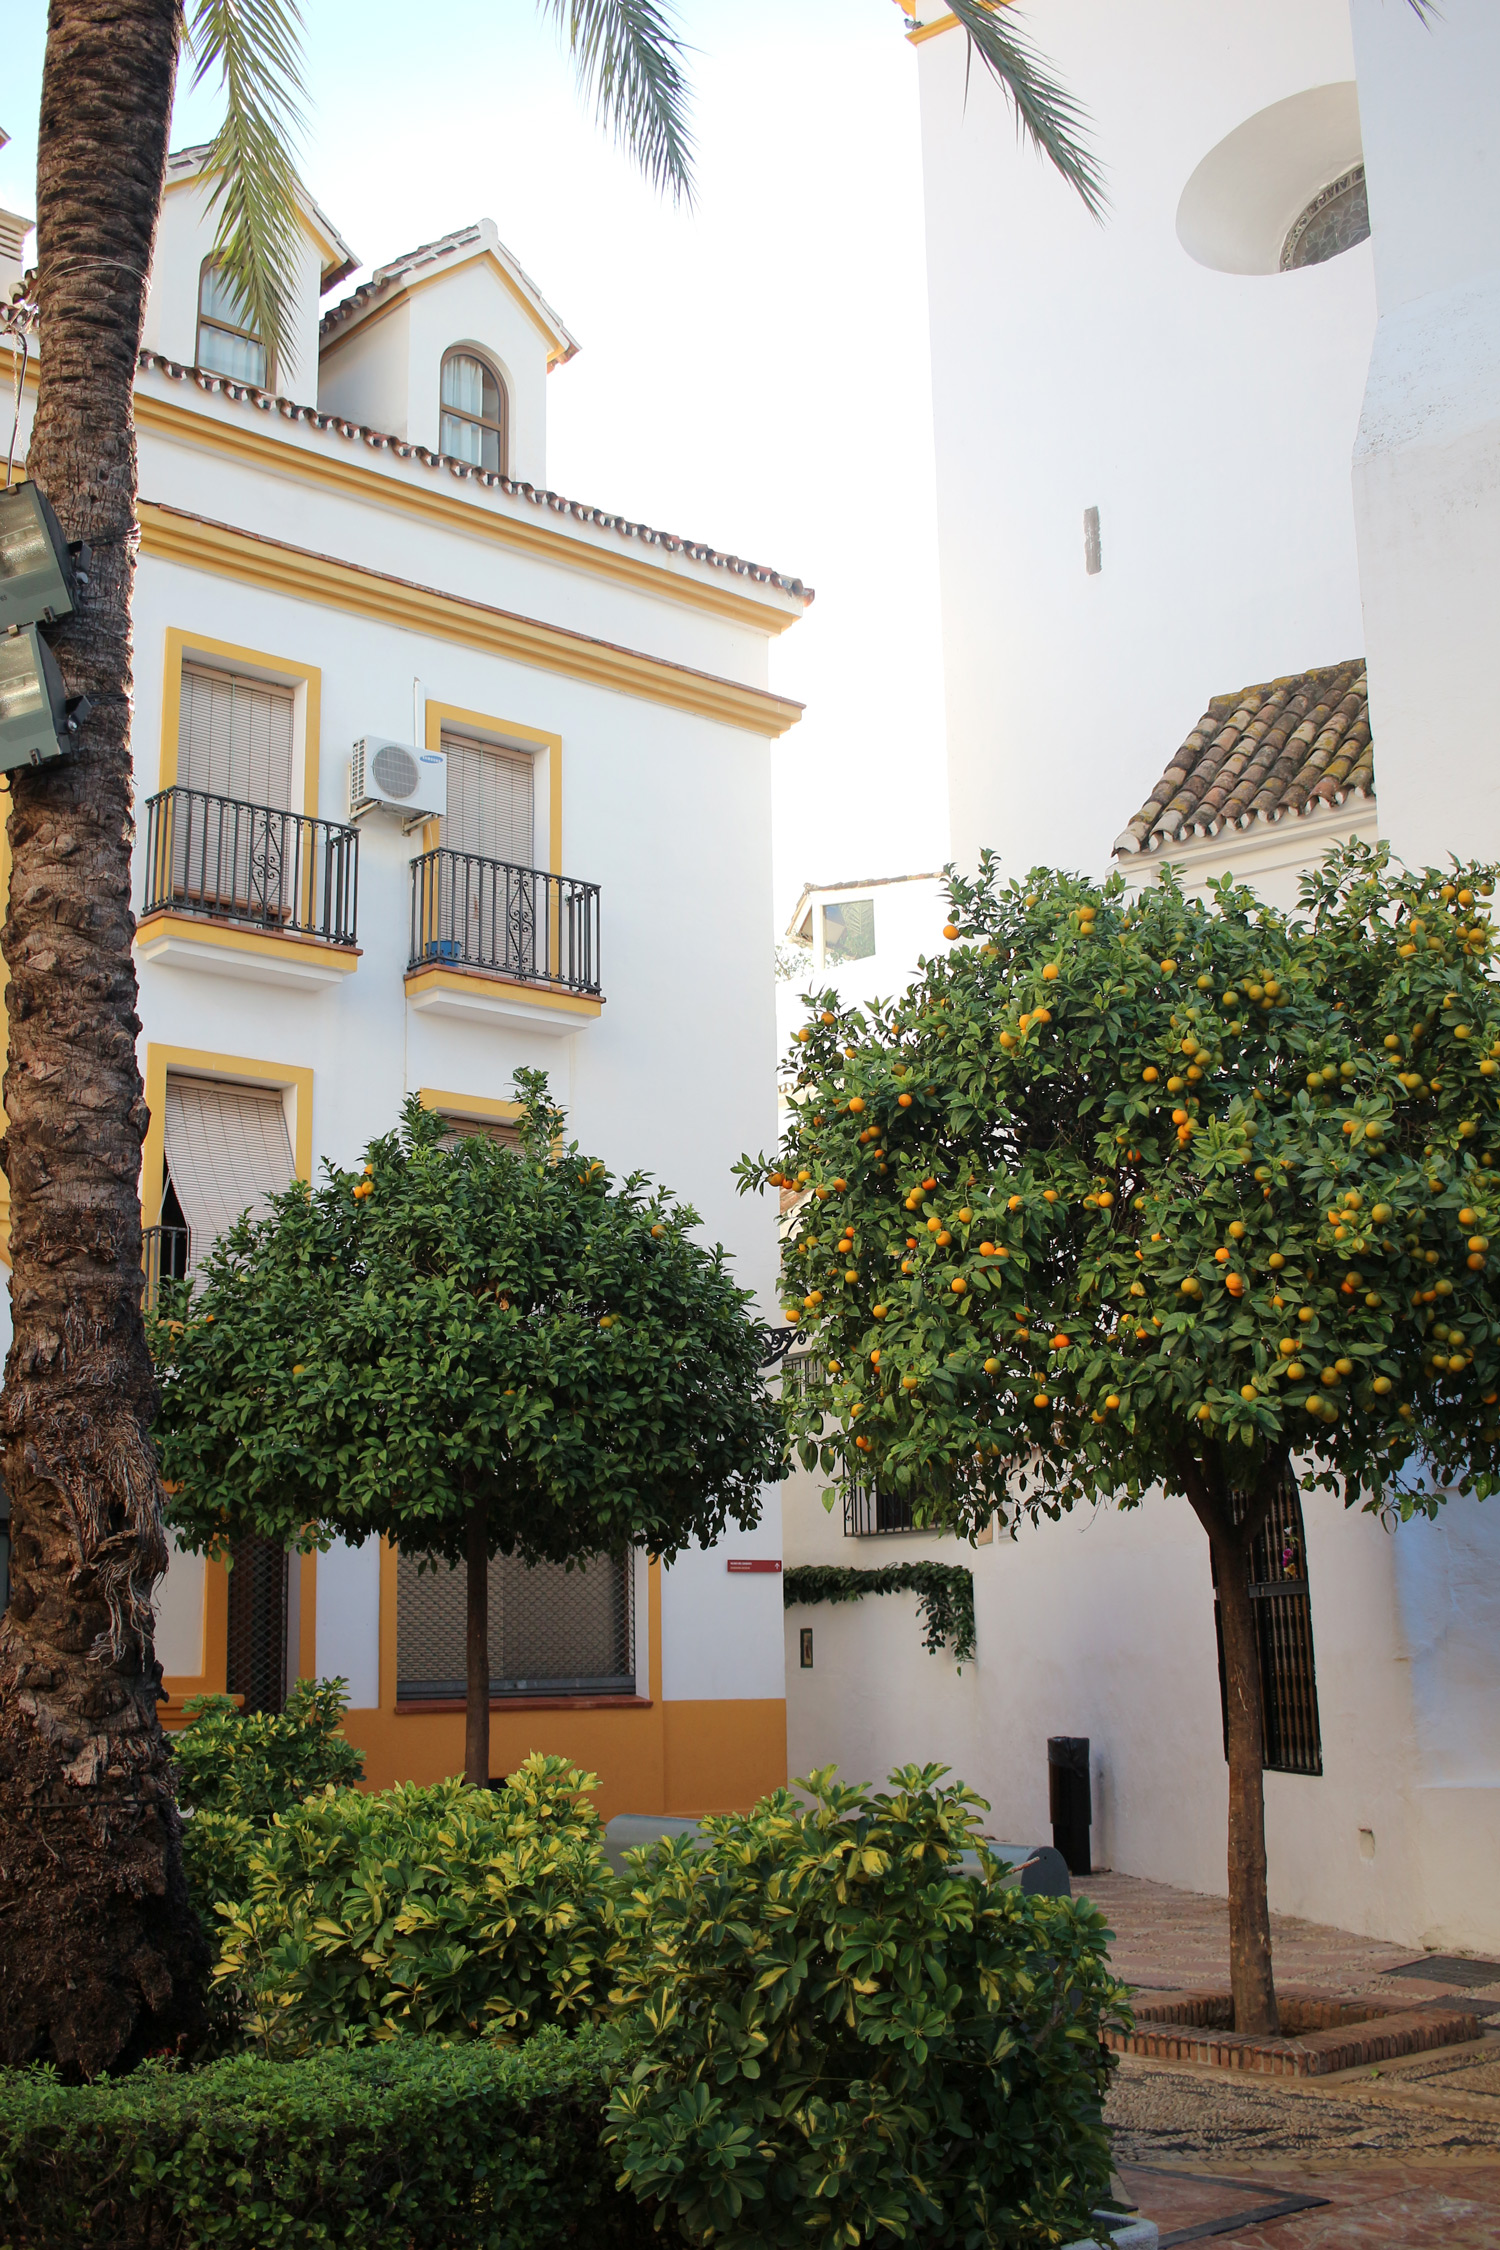 marbella-malaga-spain-travel-blogger-old-town-marbella-13